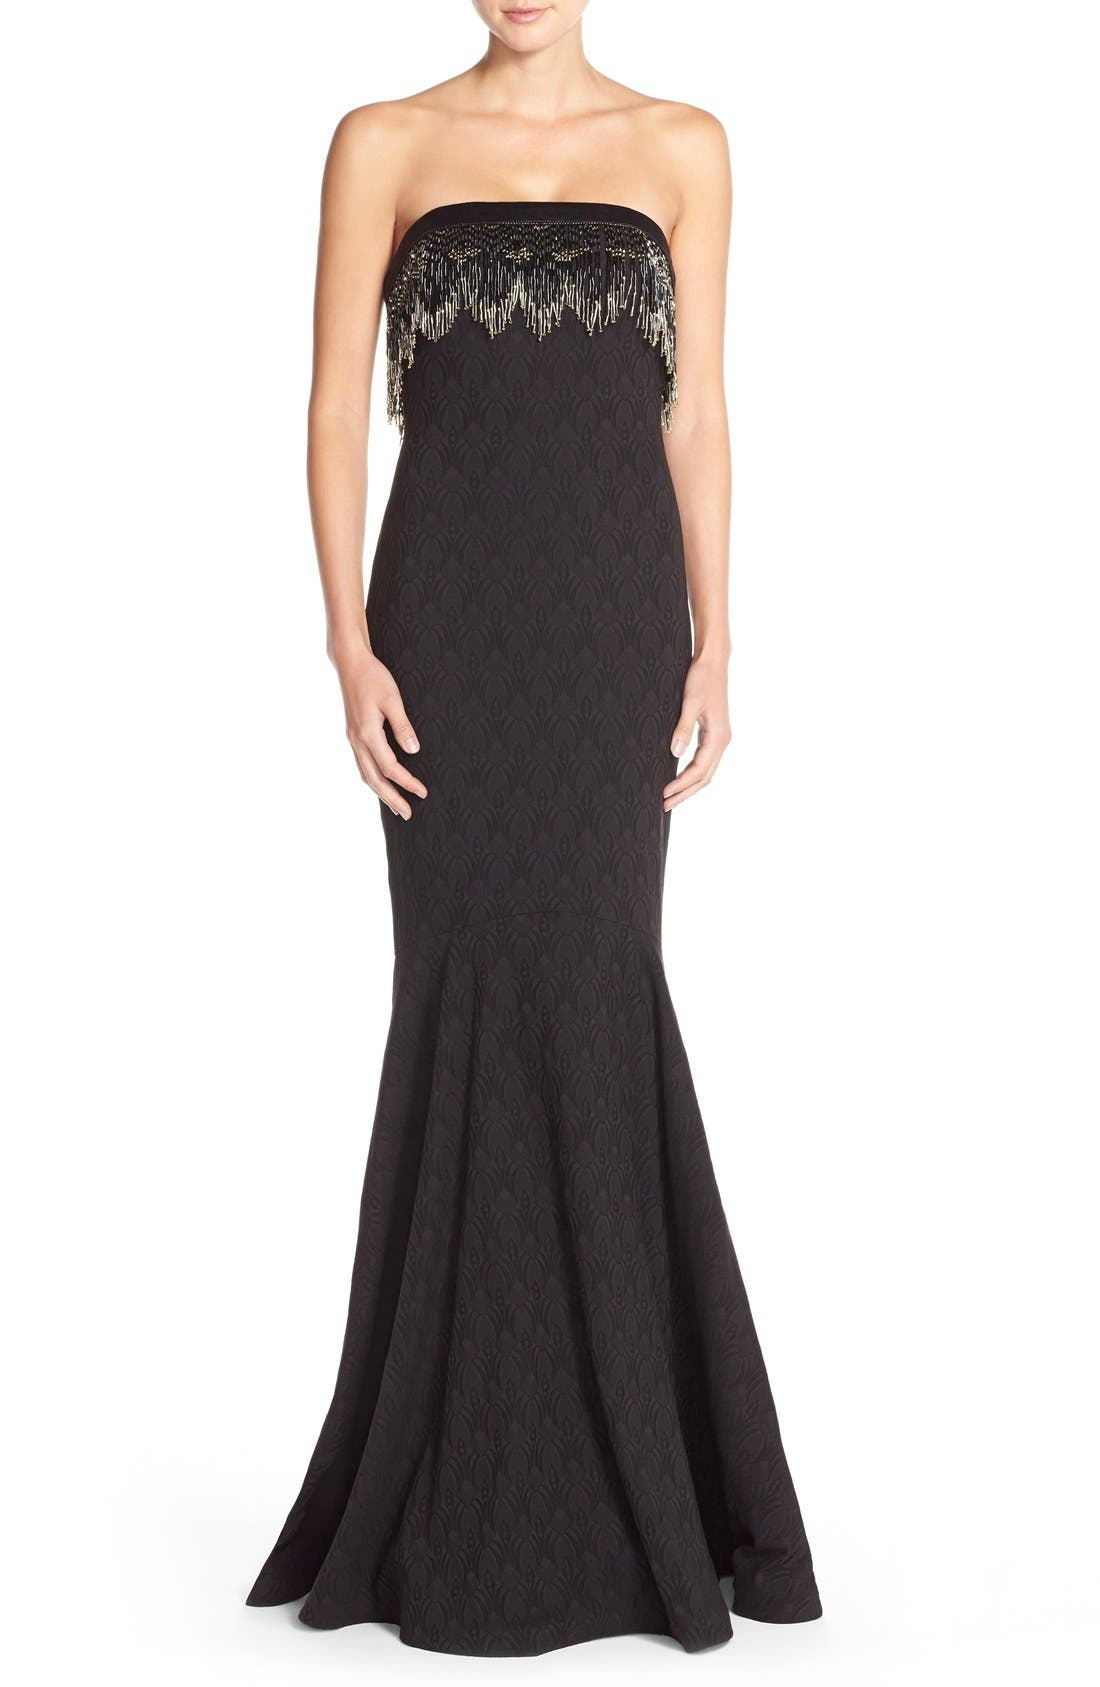 Main Image - Badgley Mischka Bead Fringe Jacquard Mermaid Gown